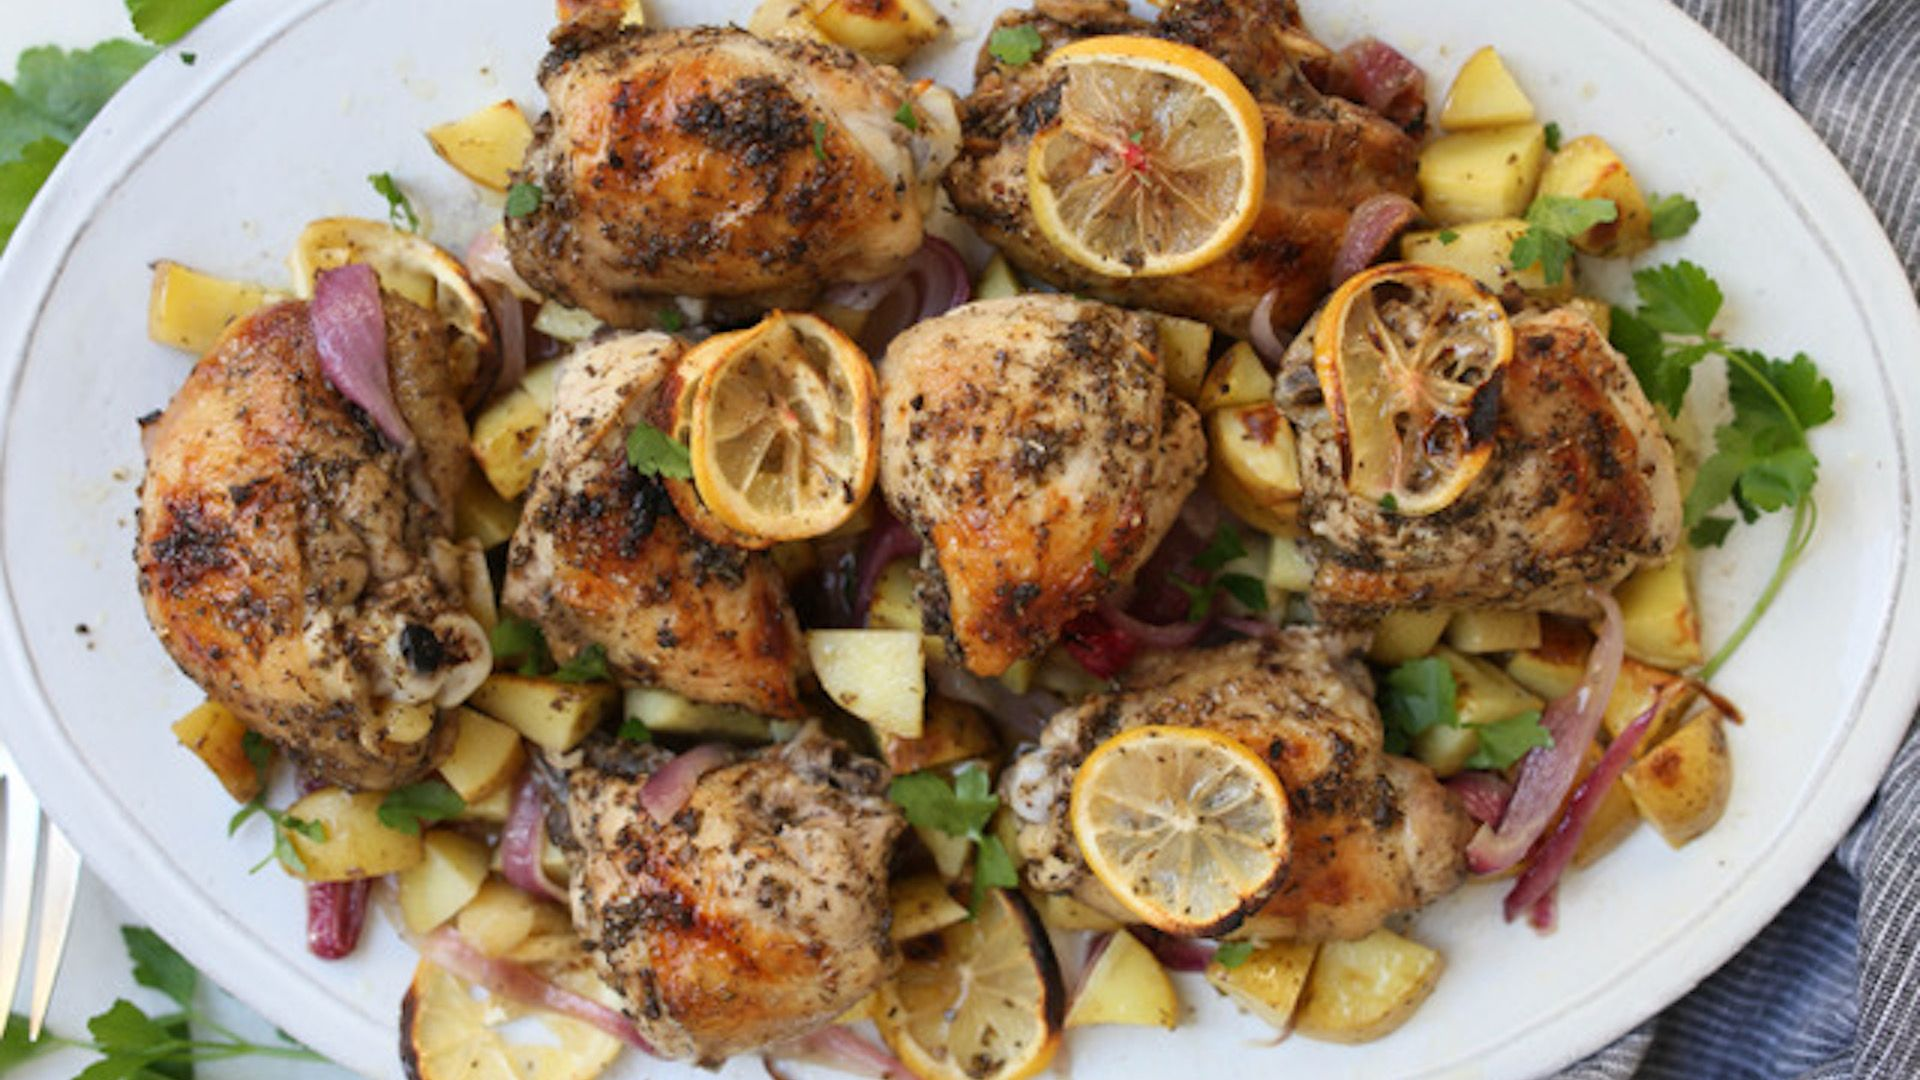 You Only Need One Pan To Make This Mediterranean Chicken Dinner Recipe Chicken Dinner Recipes Sheet Pan Meals Chicken